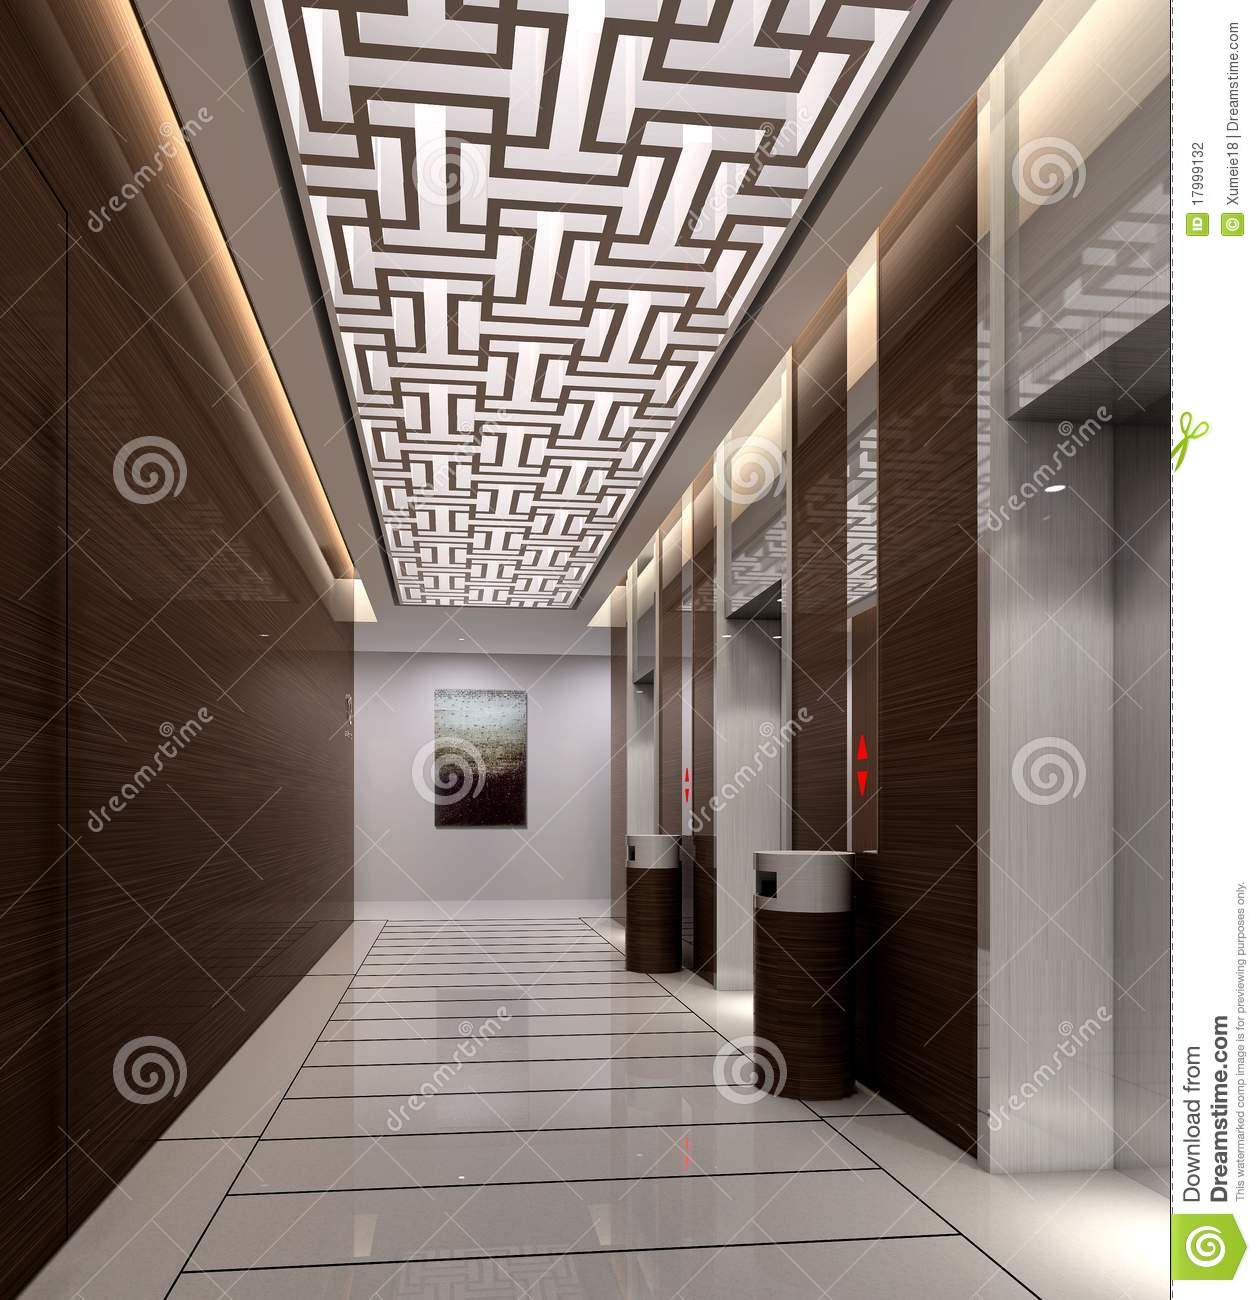 Rendu du couloir moderne illustration stock. Illustration du ...